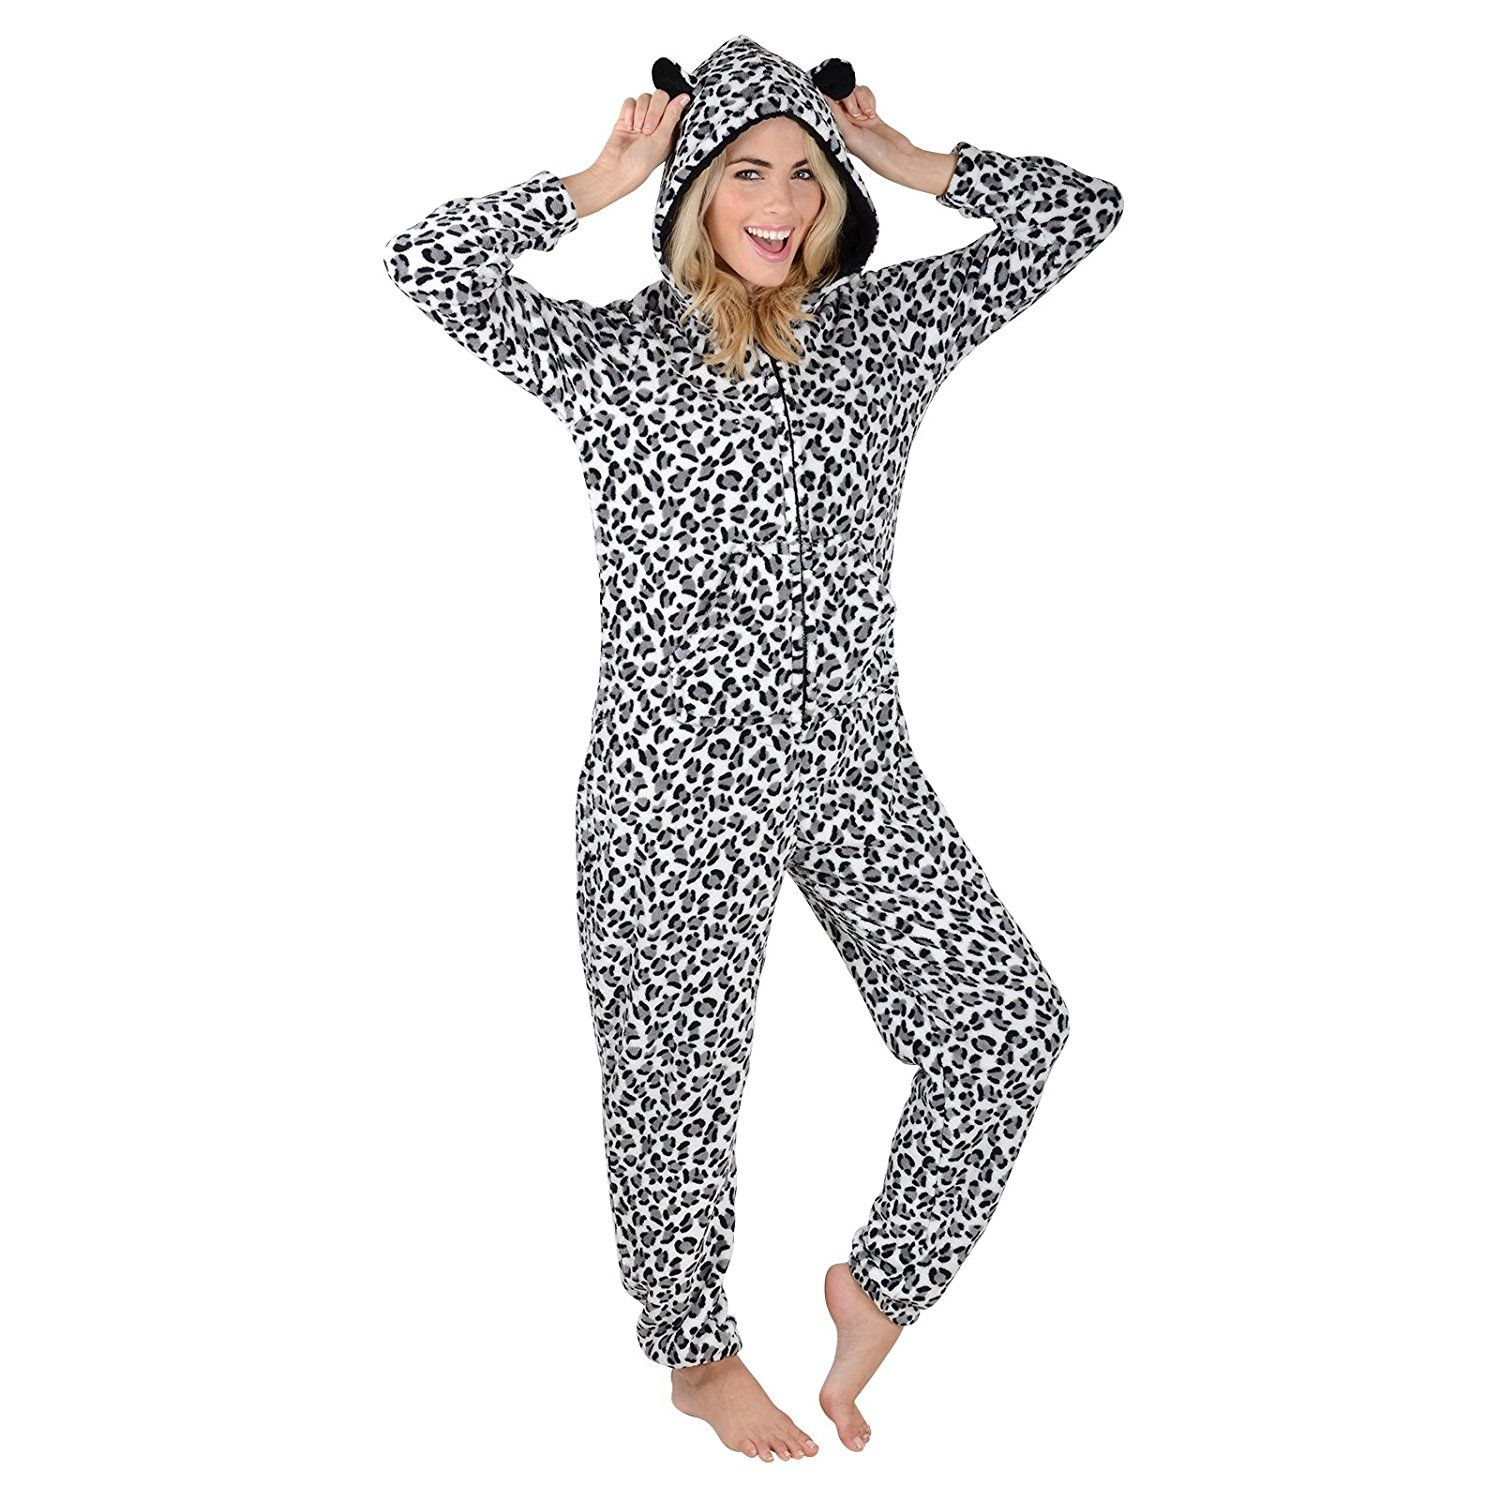 Autumn Faith Ladies Fleece All In One Piece Pyjamas Jump Sleep Suit Onesie  PJS Nightwear New 9c3d940a1